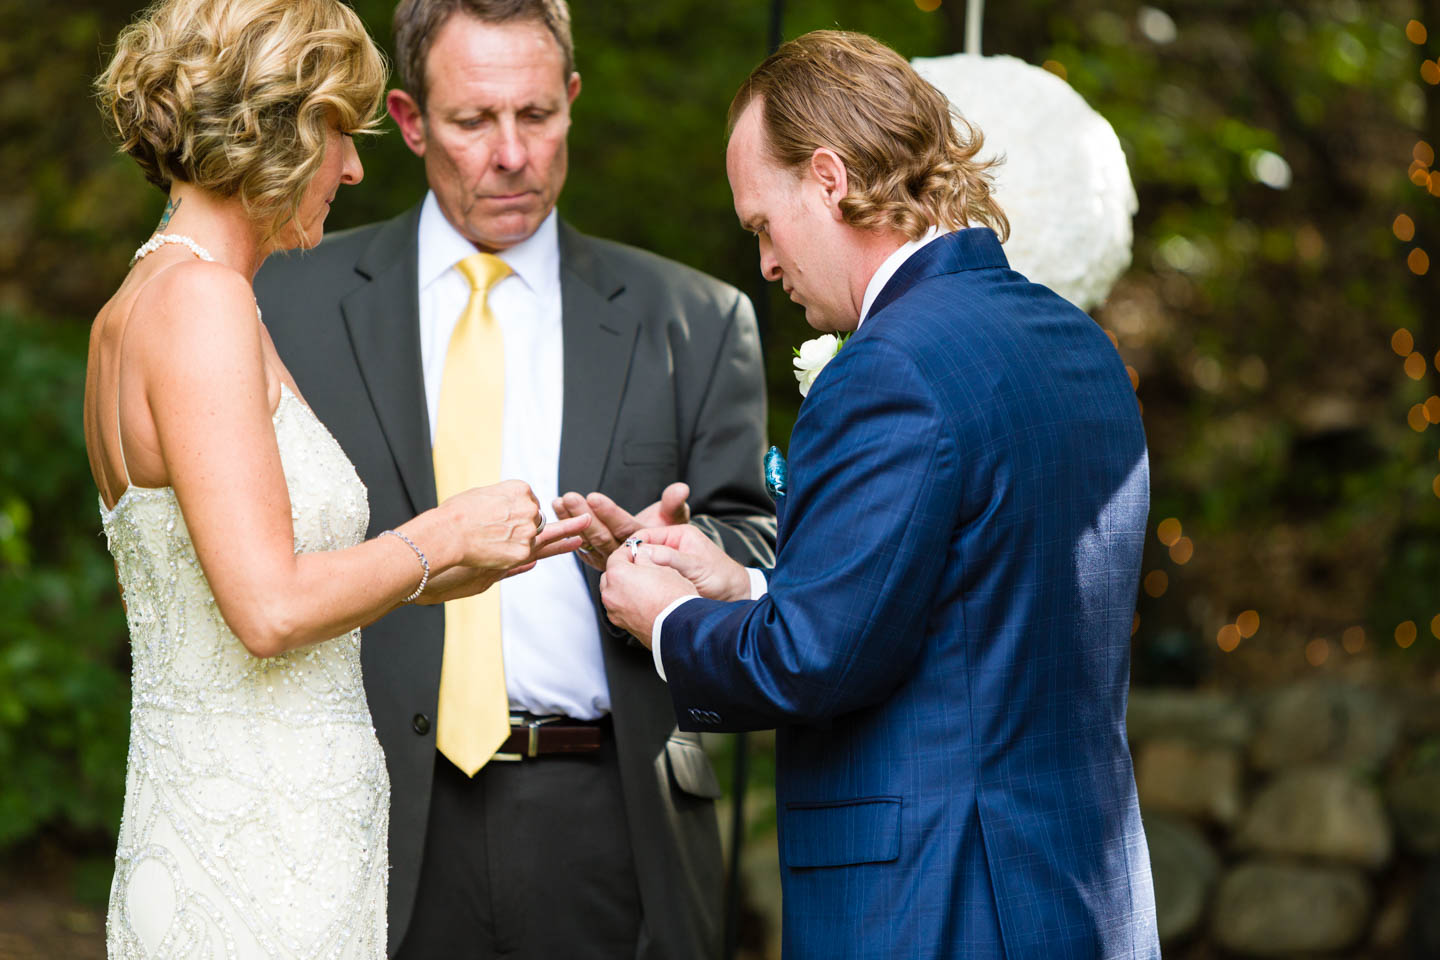 Exchanging the wedding rings